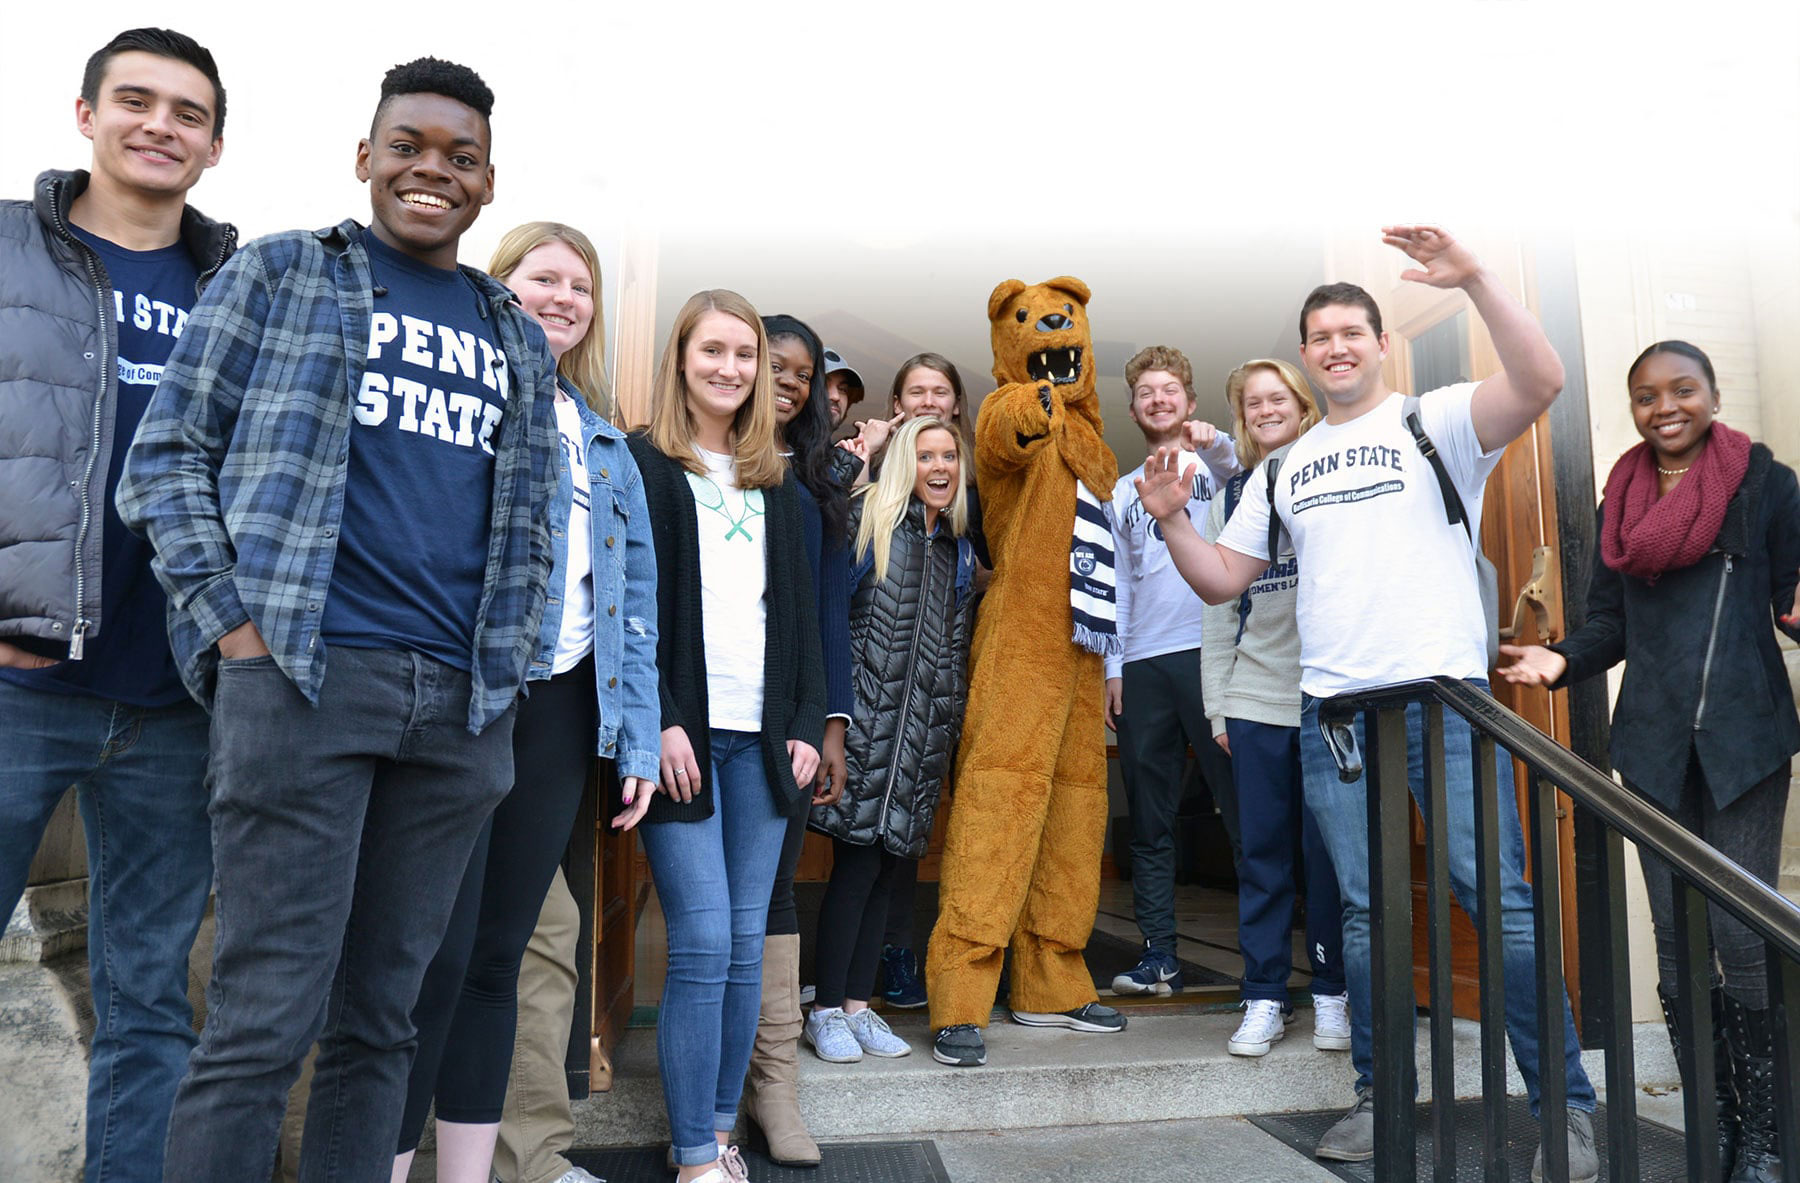 The Nittany Lion mascot points his finger at the camera while posing with a bunch of students on the Carnegie Building steps